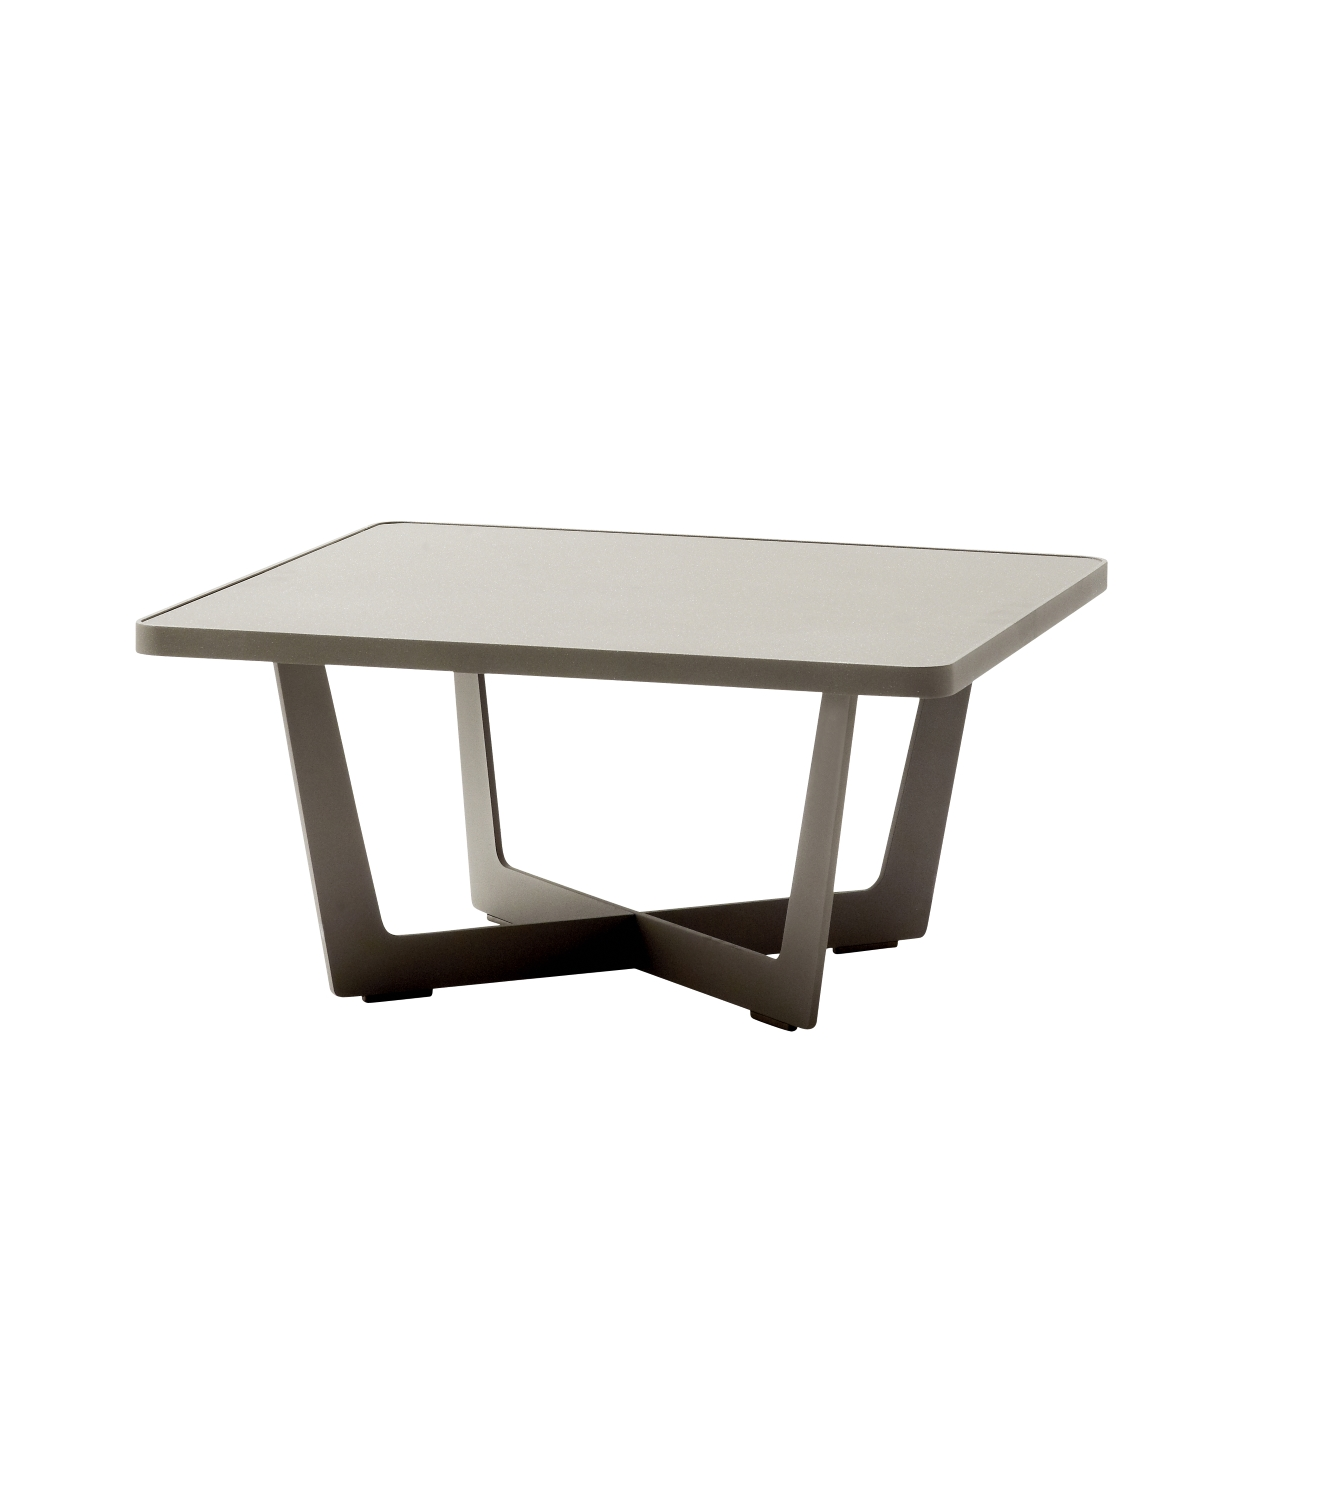 Time out soffbord 71 x 71 cm taupe, Cane-line